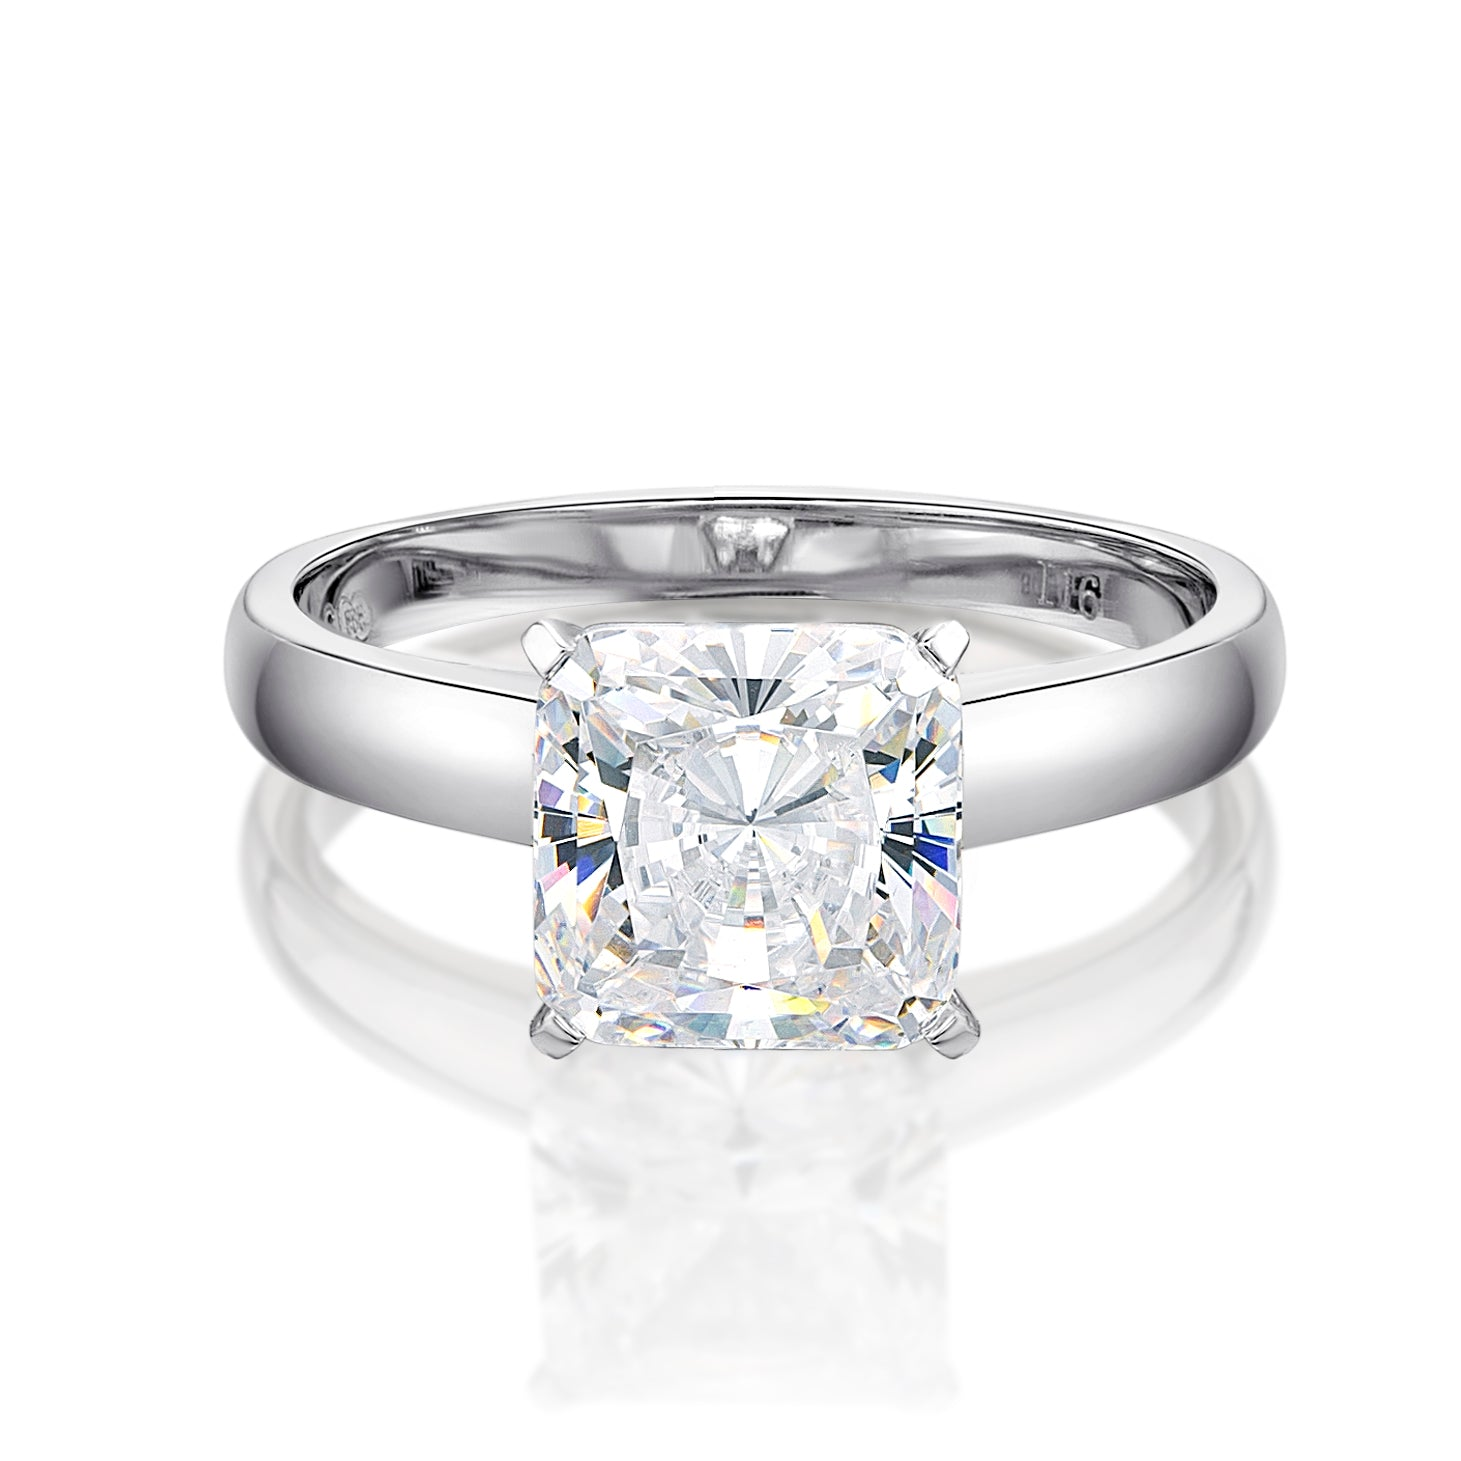 Details about  /CLEARANCE-------HCJ STAINLESS STEEL PRINCESS CUT BRIDAL CZ ENGAGEMENT RING SZ 10